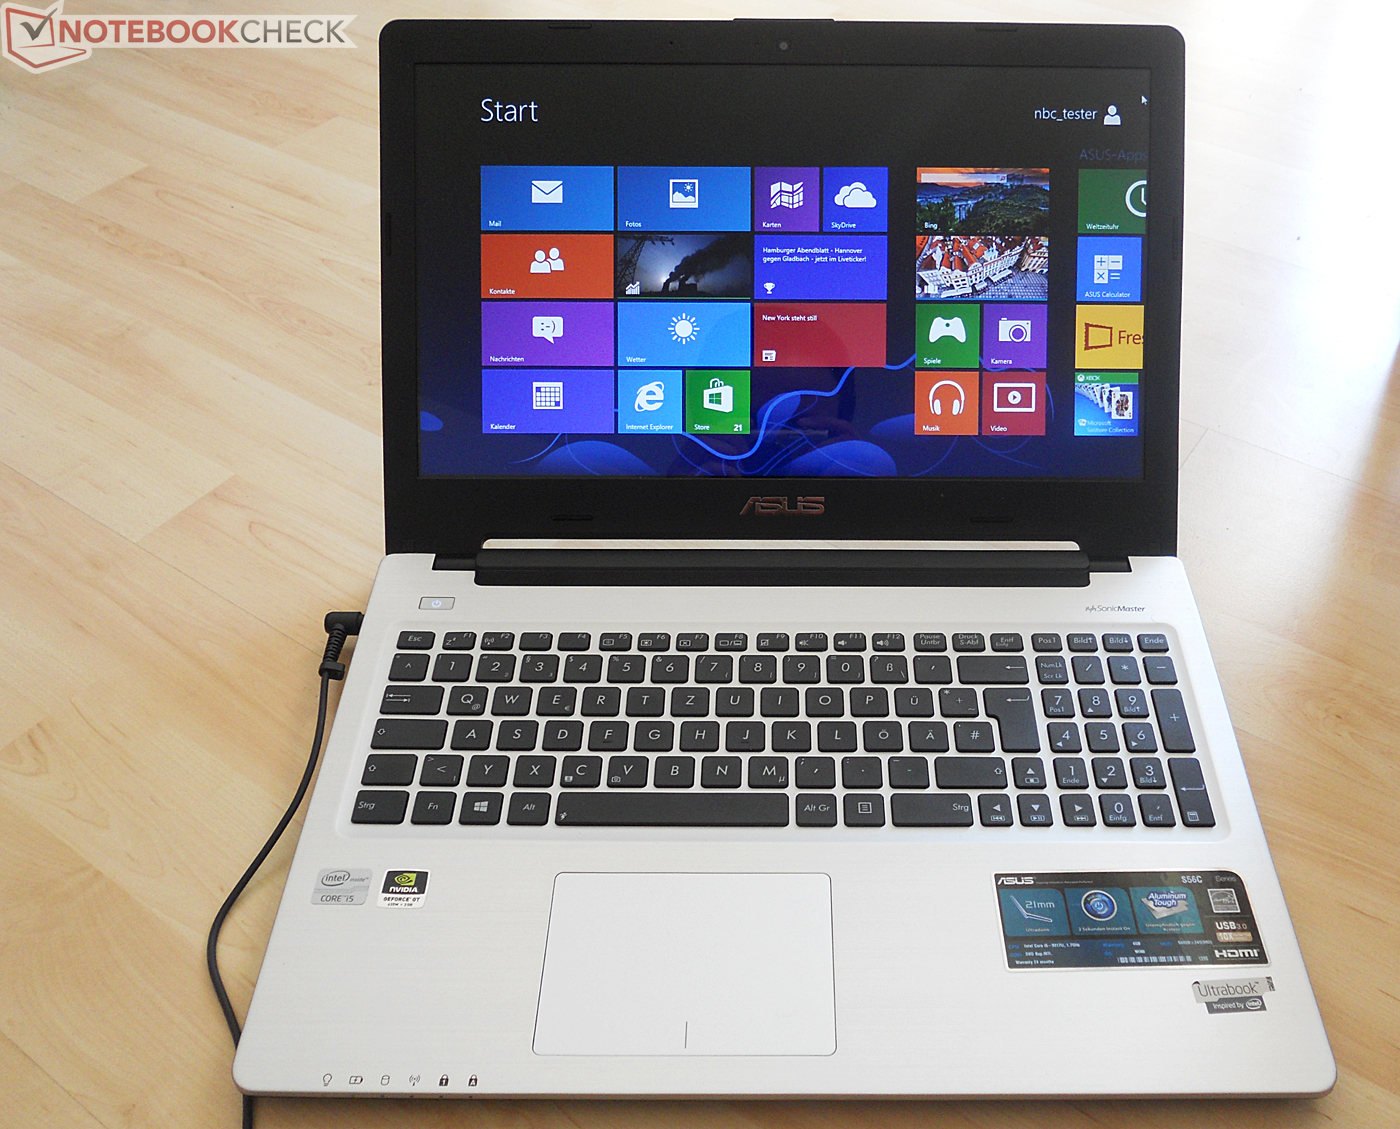 Asus S56cm Xx079h Notebookcheck It